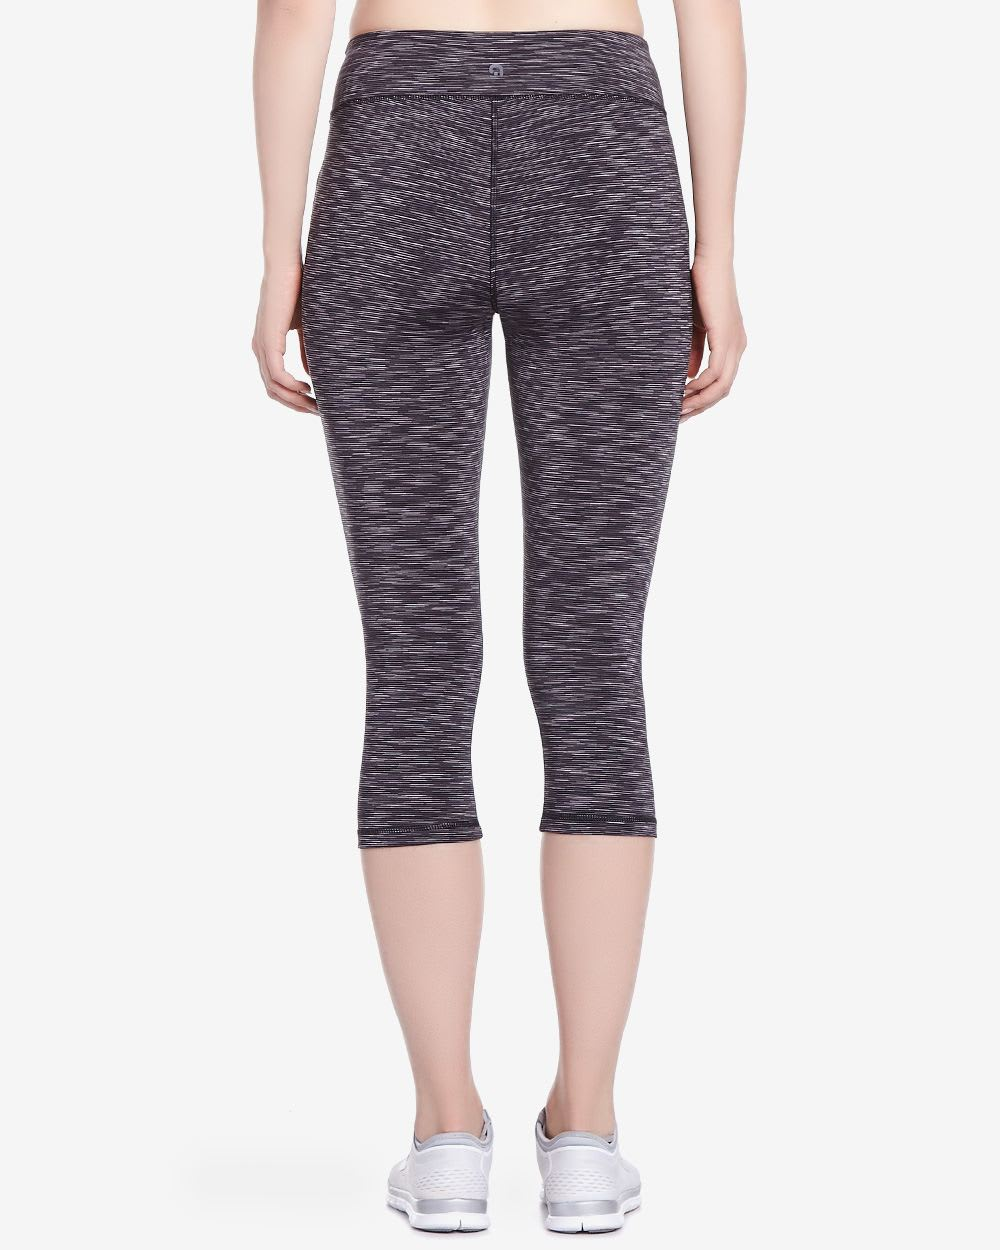 Hyba Space Dye Capri Legging